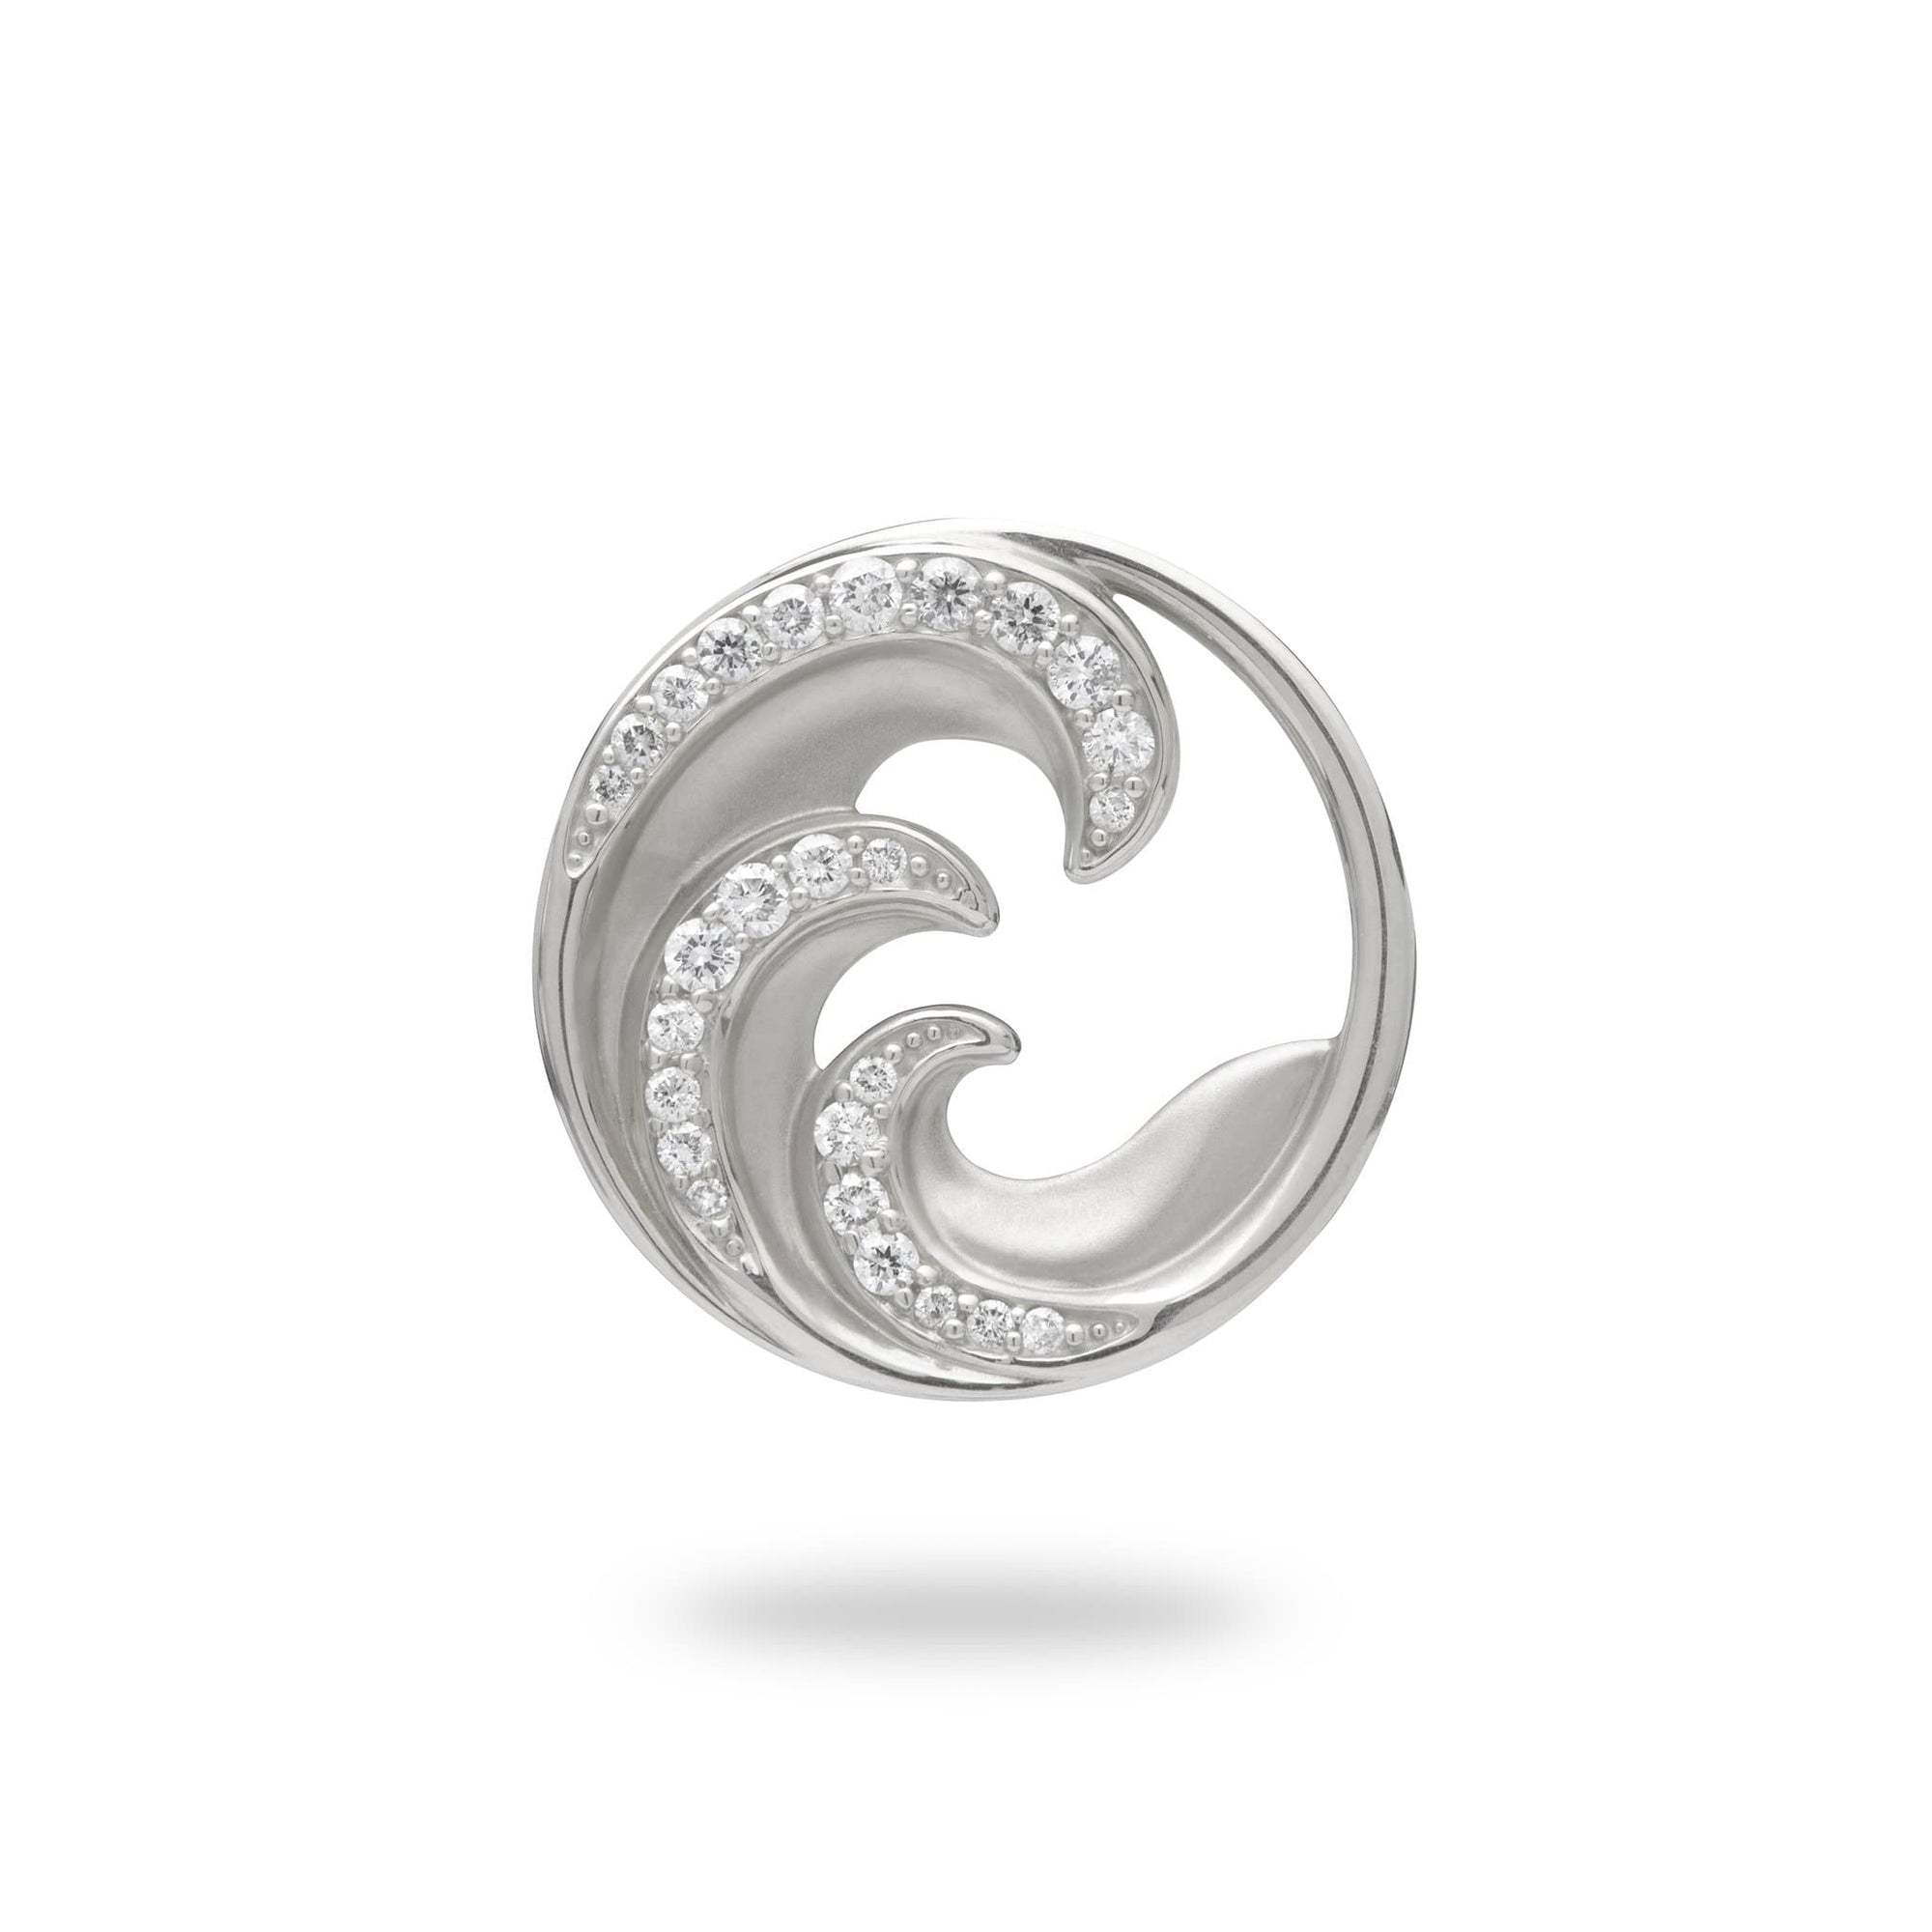 Nalu Pendant in White Gold with Diamonds - 22mm - Maui Divers Jewelry